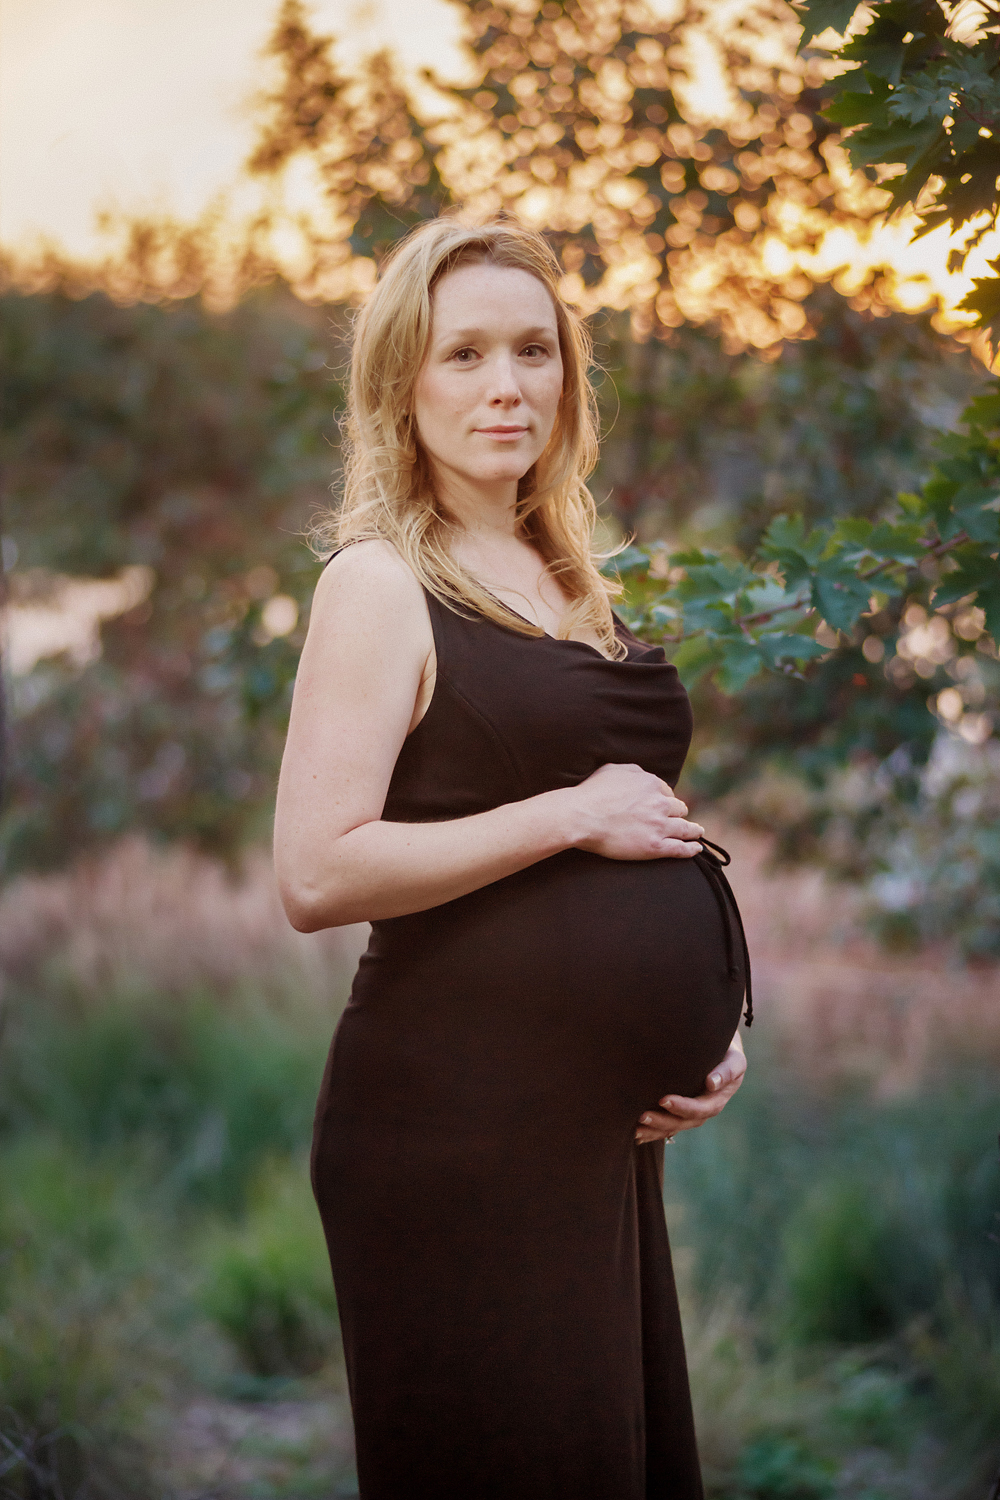 2012_10_05_SARA_HOSTLAND_MATERNITY_PORTRAITS_0241_2013_COLOUR_REDONE.JPG